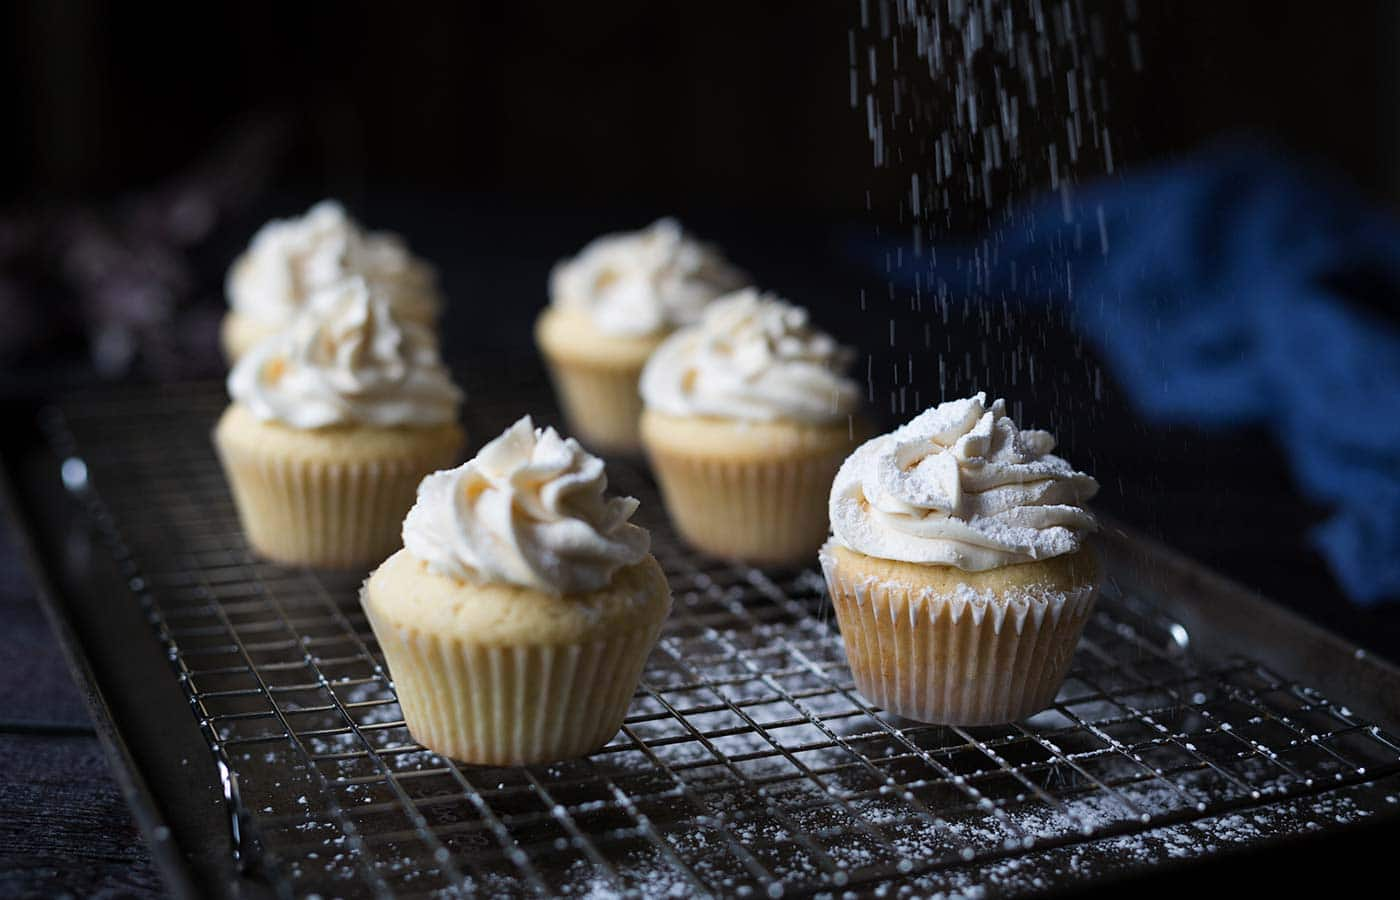 These Vanilla Maple Whiskey Cupcakes are a boozy delight, with a buttery maple center and a vanilla whiskey buttercream. Get the recipe from Savory Simple!